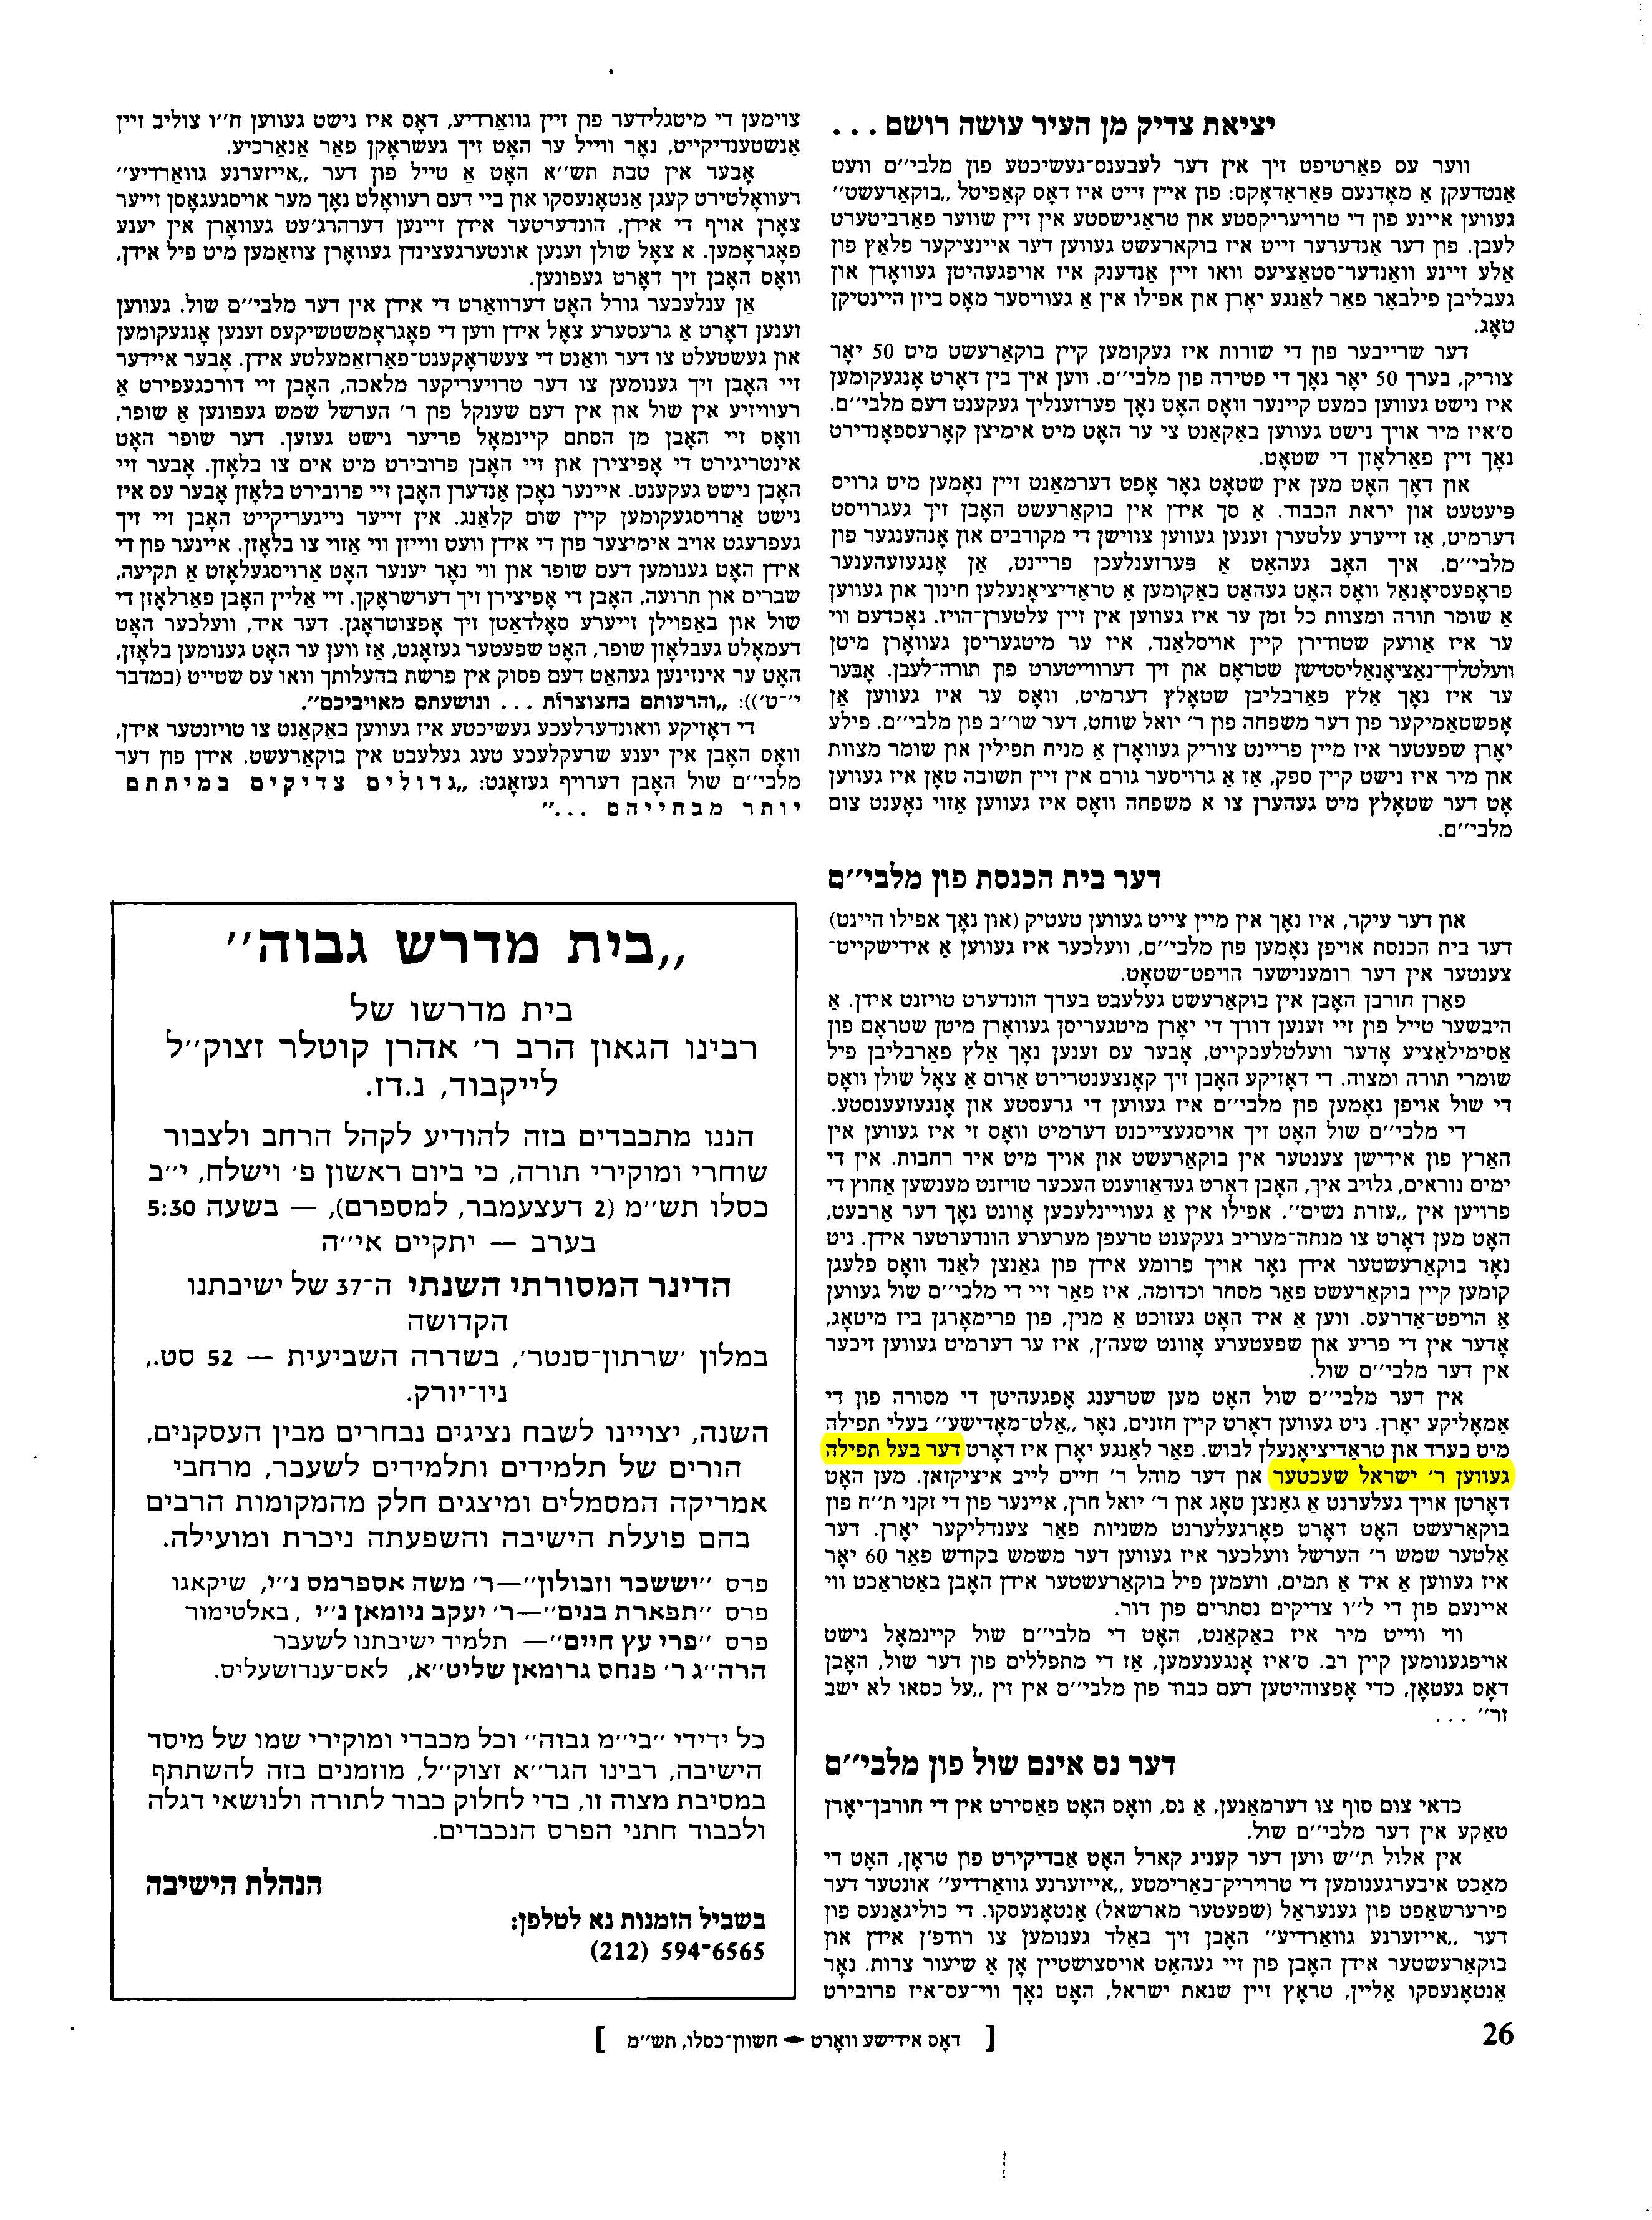 hebrewbooks_org_24434_26.jpg